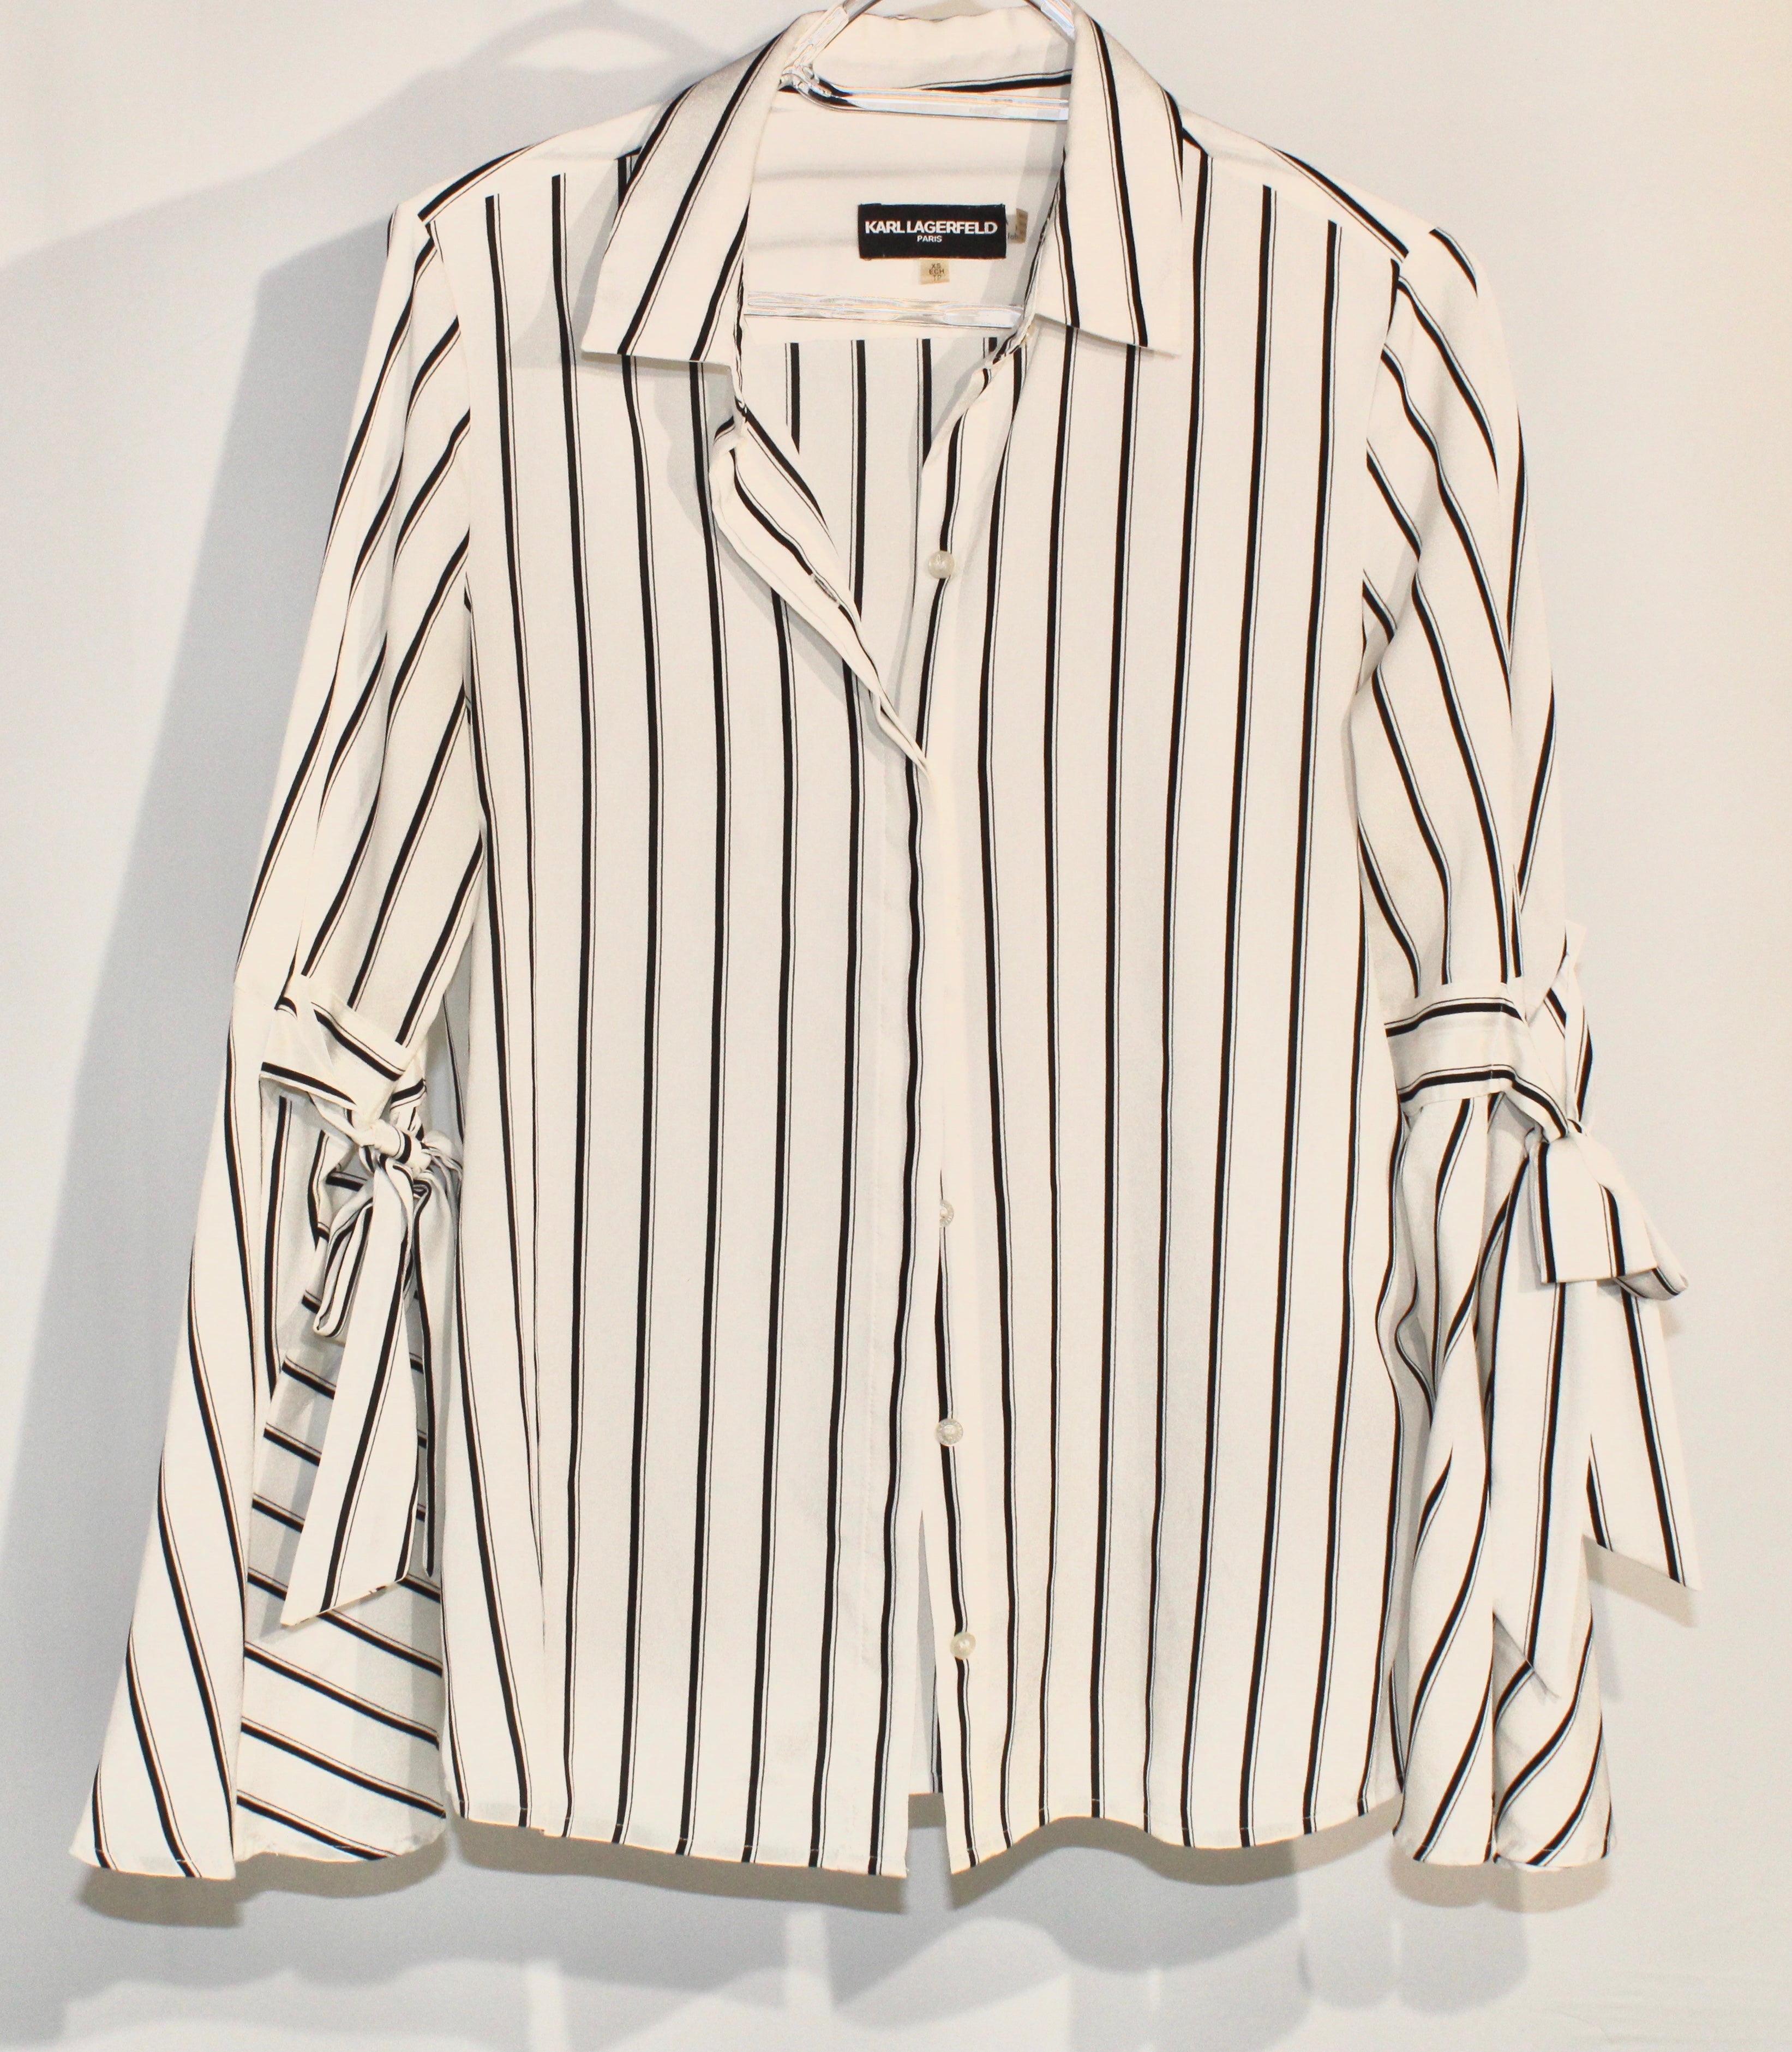 Primary Photo - <P>BRAND: KARL LAGERFELD <BR>STYLE: BLOUSE <BR>COLOR: STRIPED <BR>SIZE: XS <BR>SKU: 262-26211-139049</P> <P> </P> <P>DESIGNER FINAL</P>